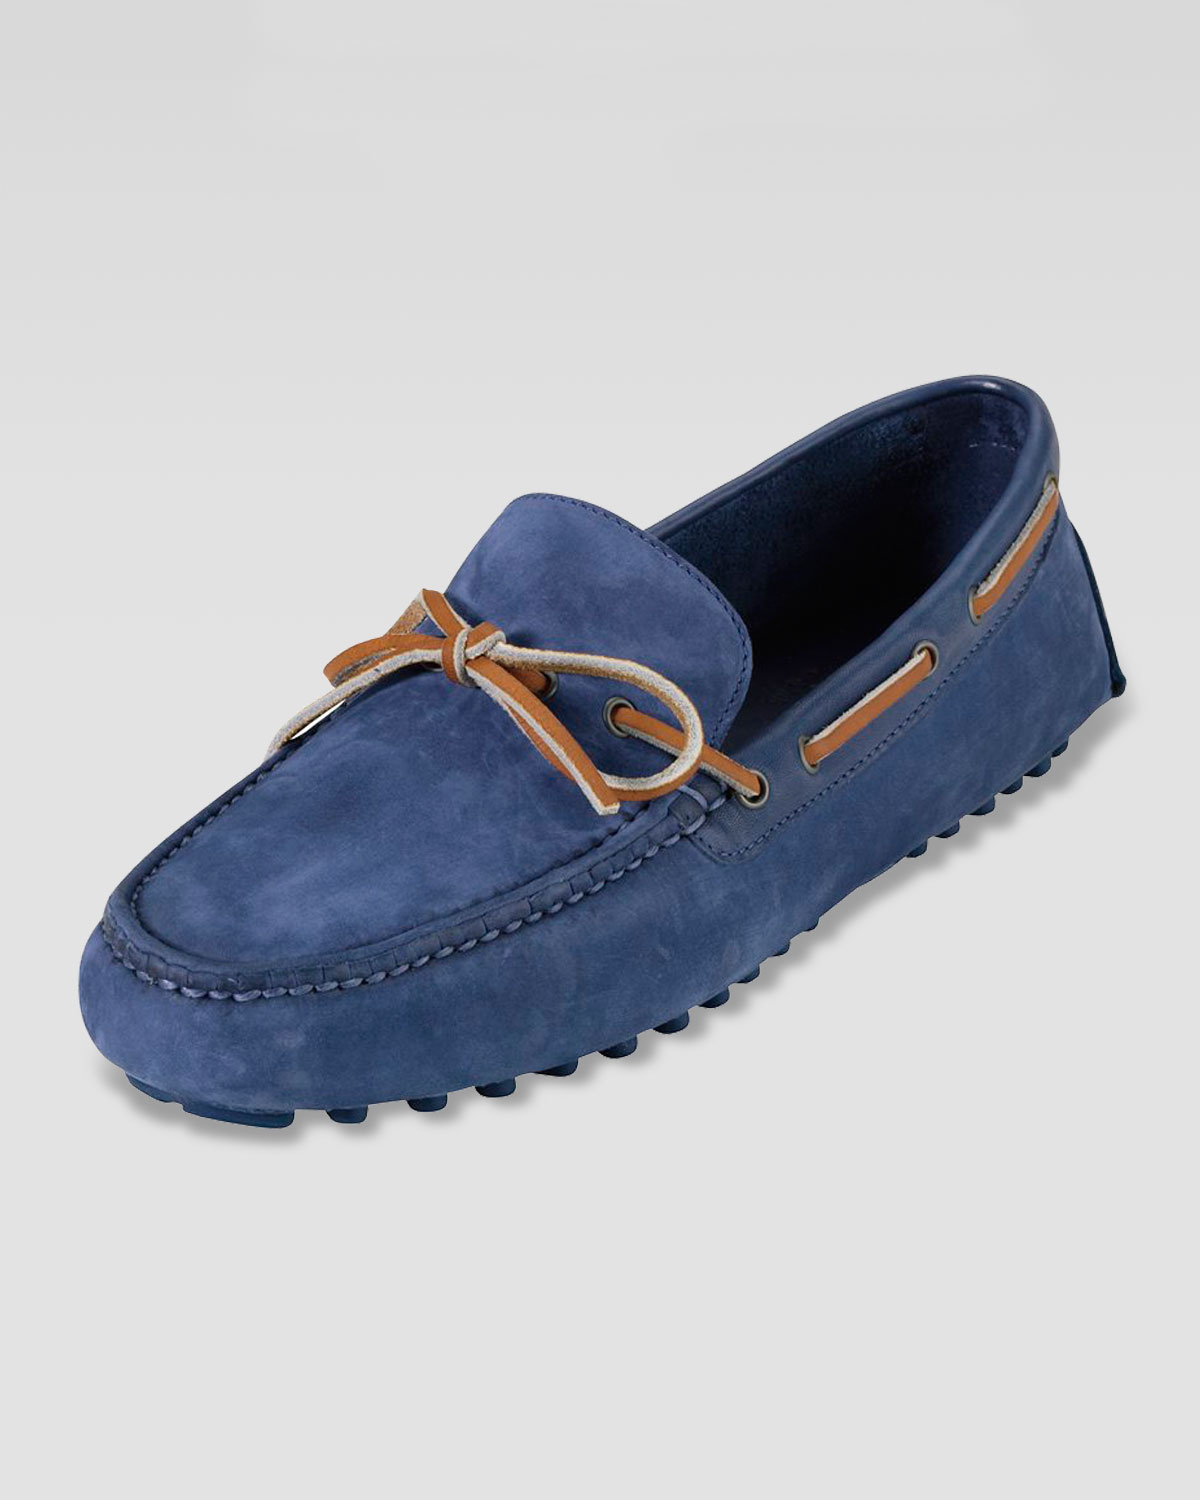 abd3e145c36 Lyst - Cole Haan Air Grant Moccasin Driver Navy in Blue for Men